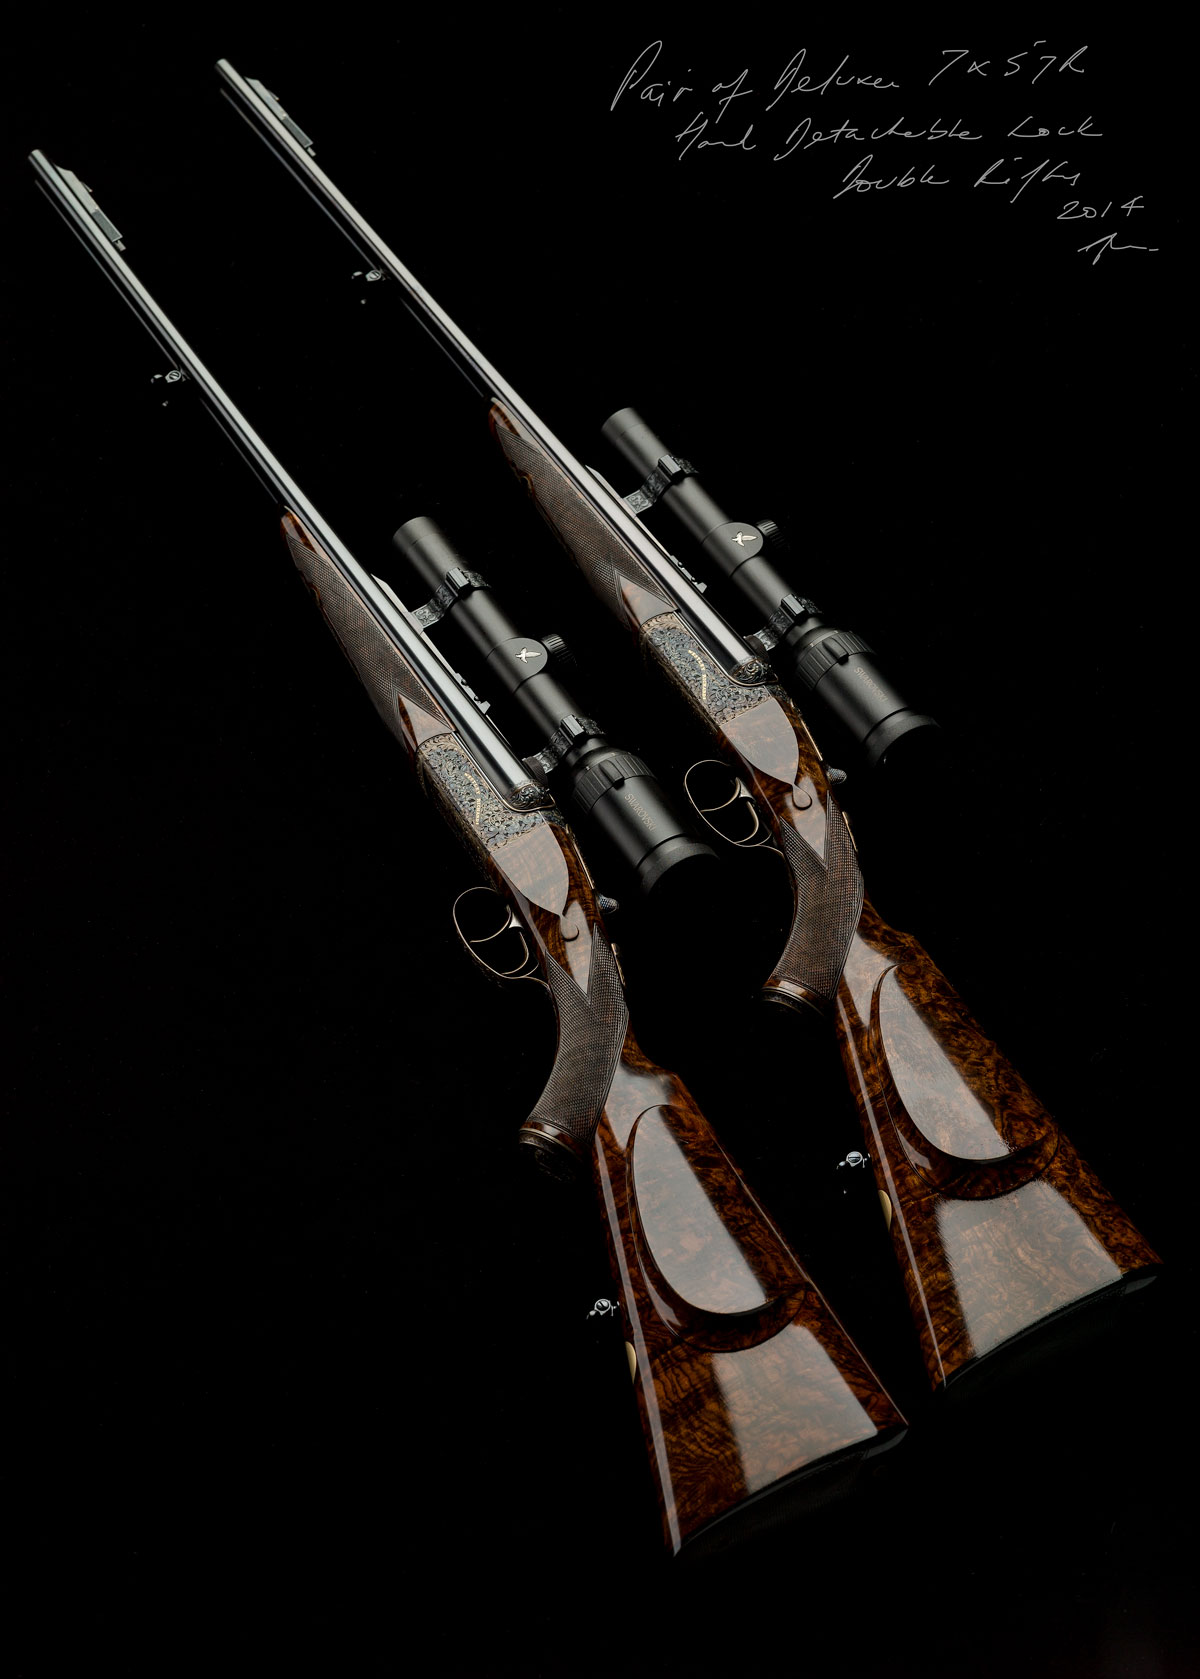 Westley Richards, Droplock Rifle, Pair double rifles